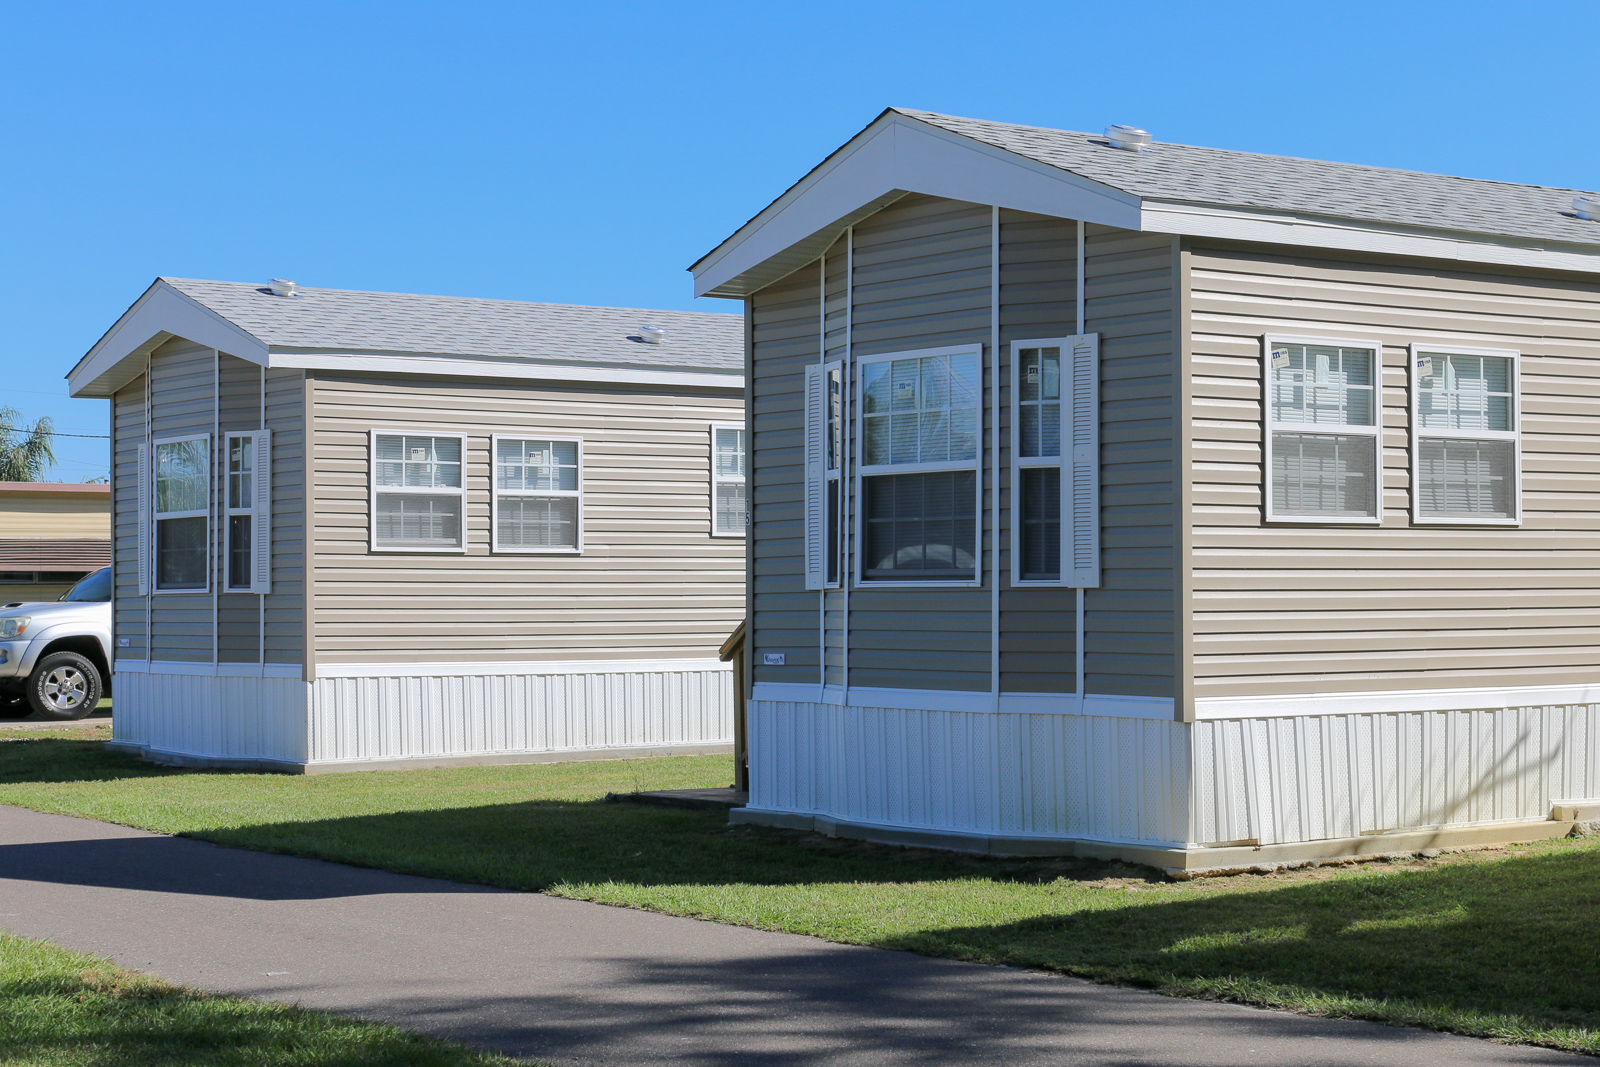 Mobile Homes Are Filling the Affordable Housing Gap